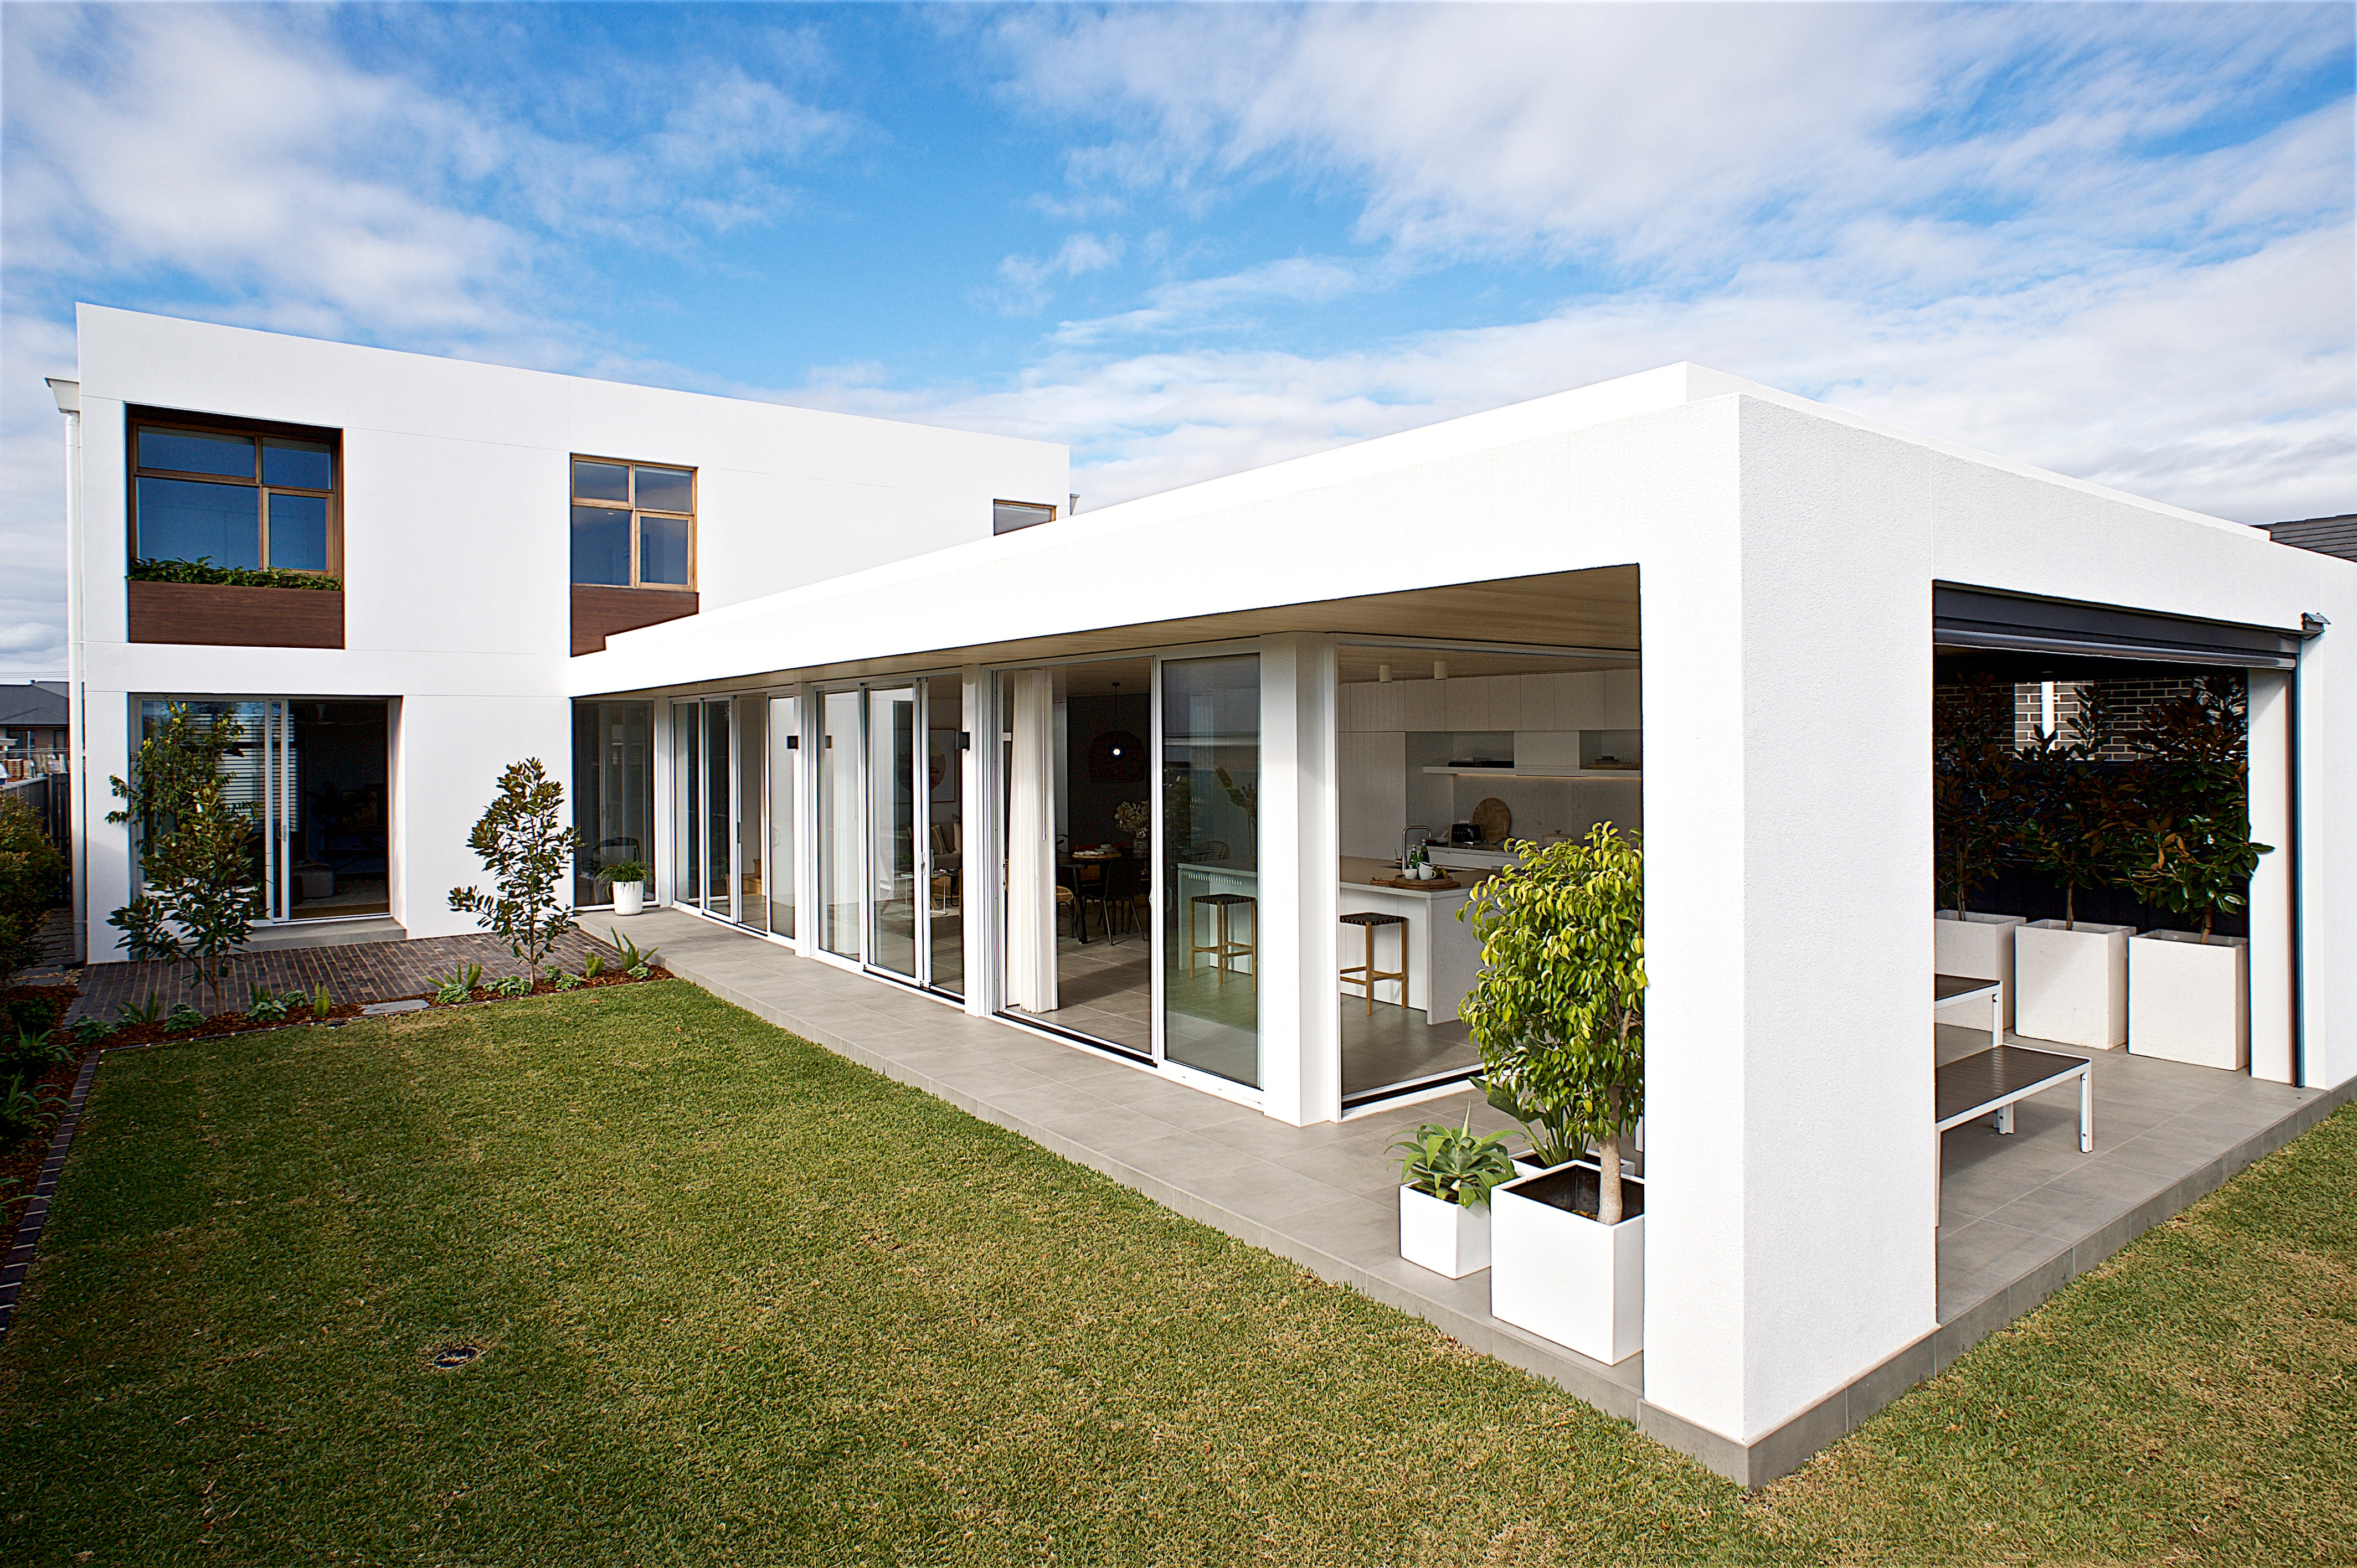 It's a wrap! Winning home design achieves the ideal look ... Ideal House Design on good house design, field house design, linear house design, concrete home house design, inside the house design, better house design, haute house design, the best house design,